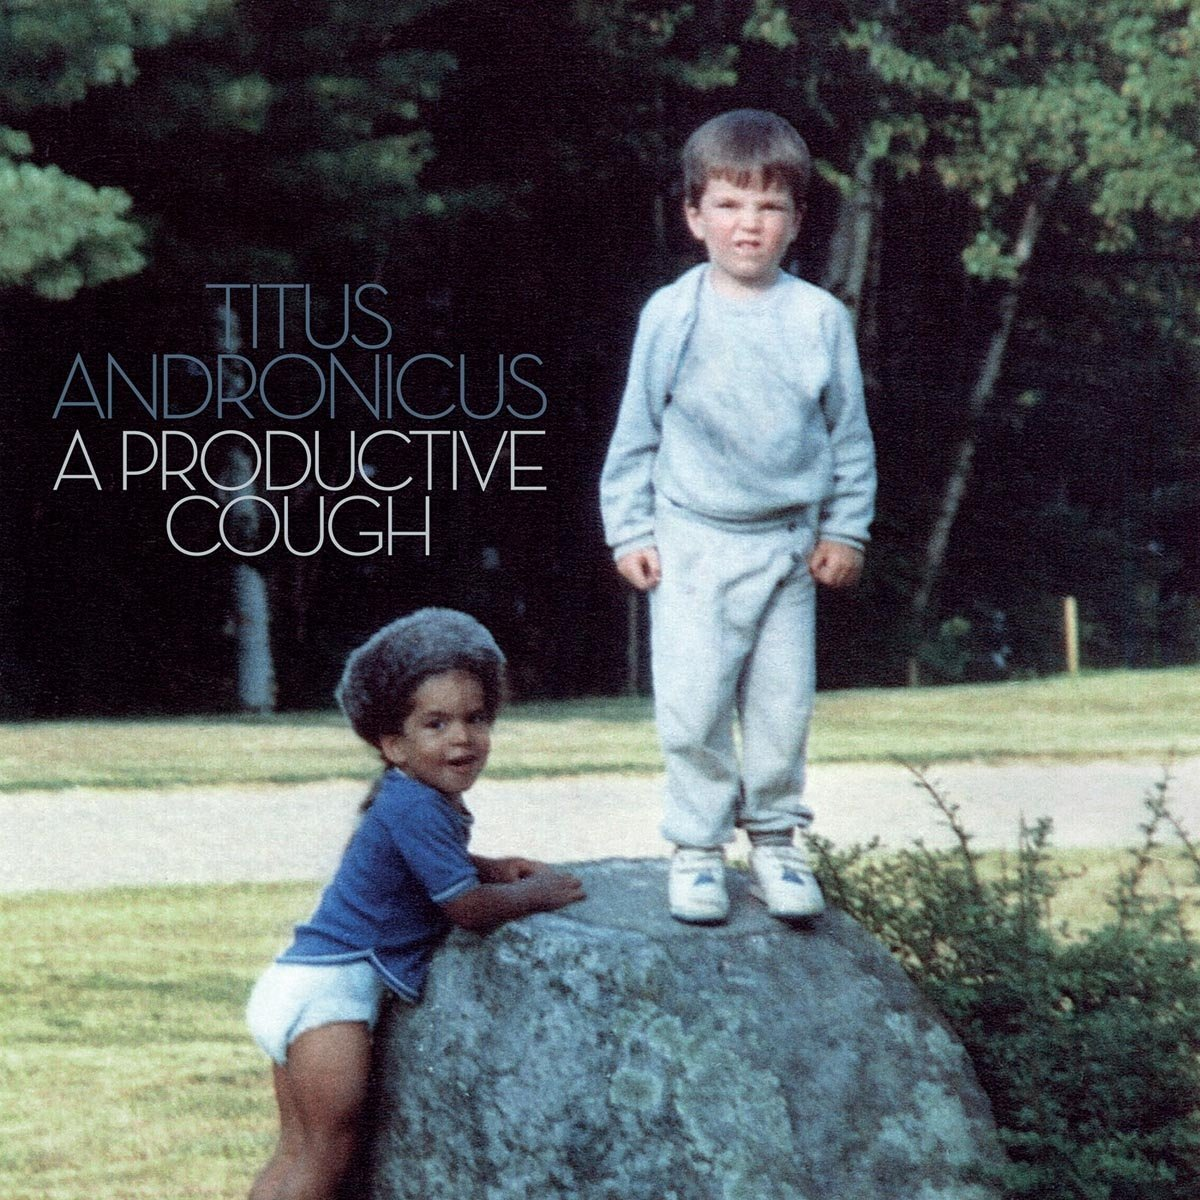 Titus Andronicus, A Productive Cough